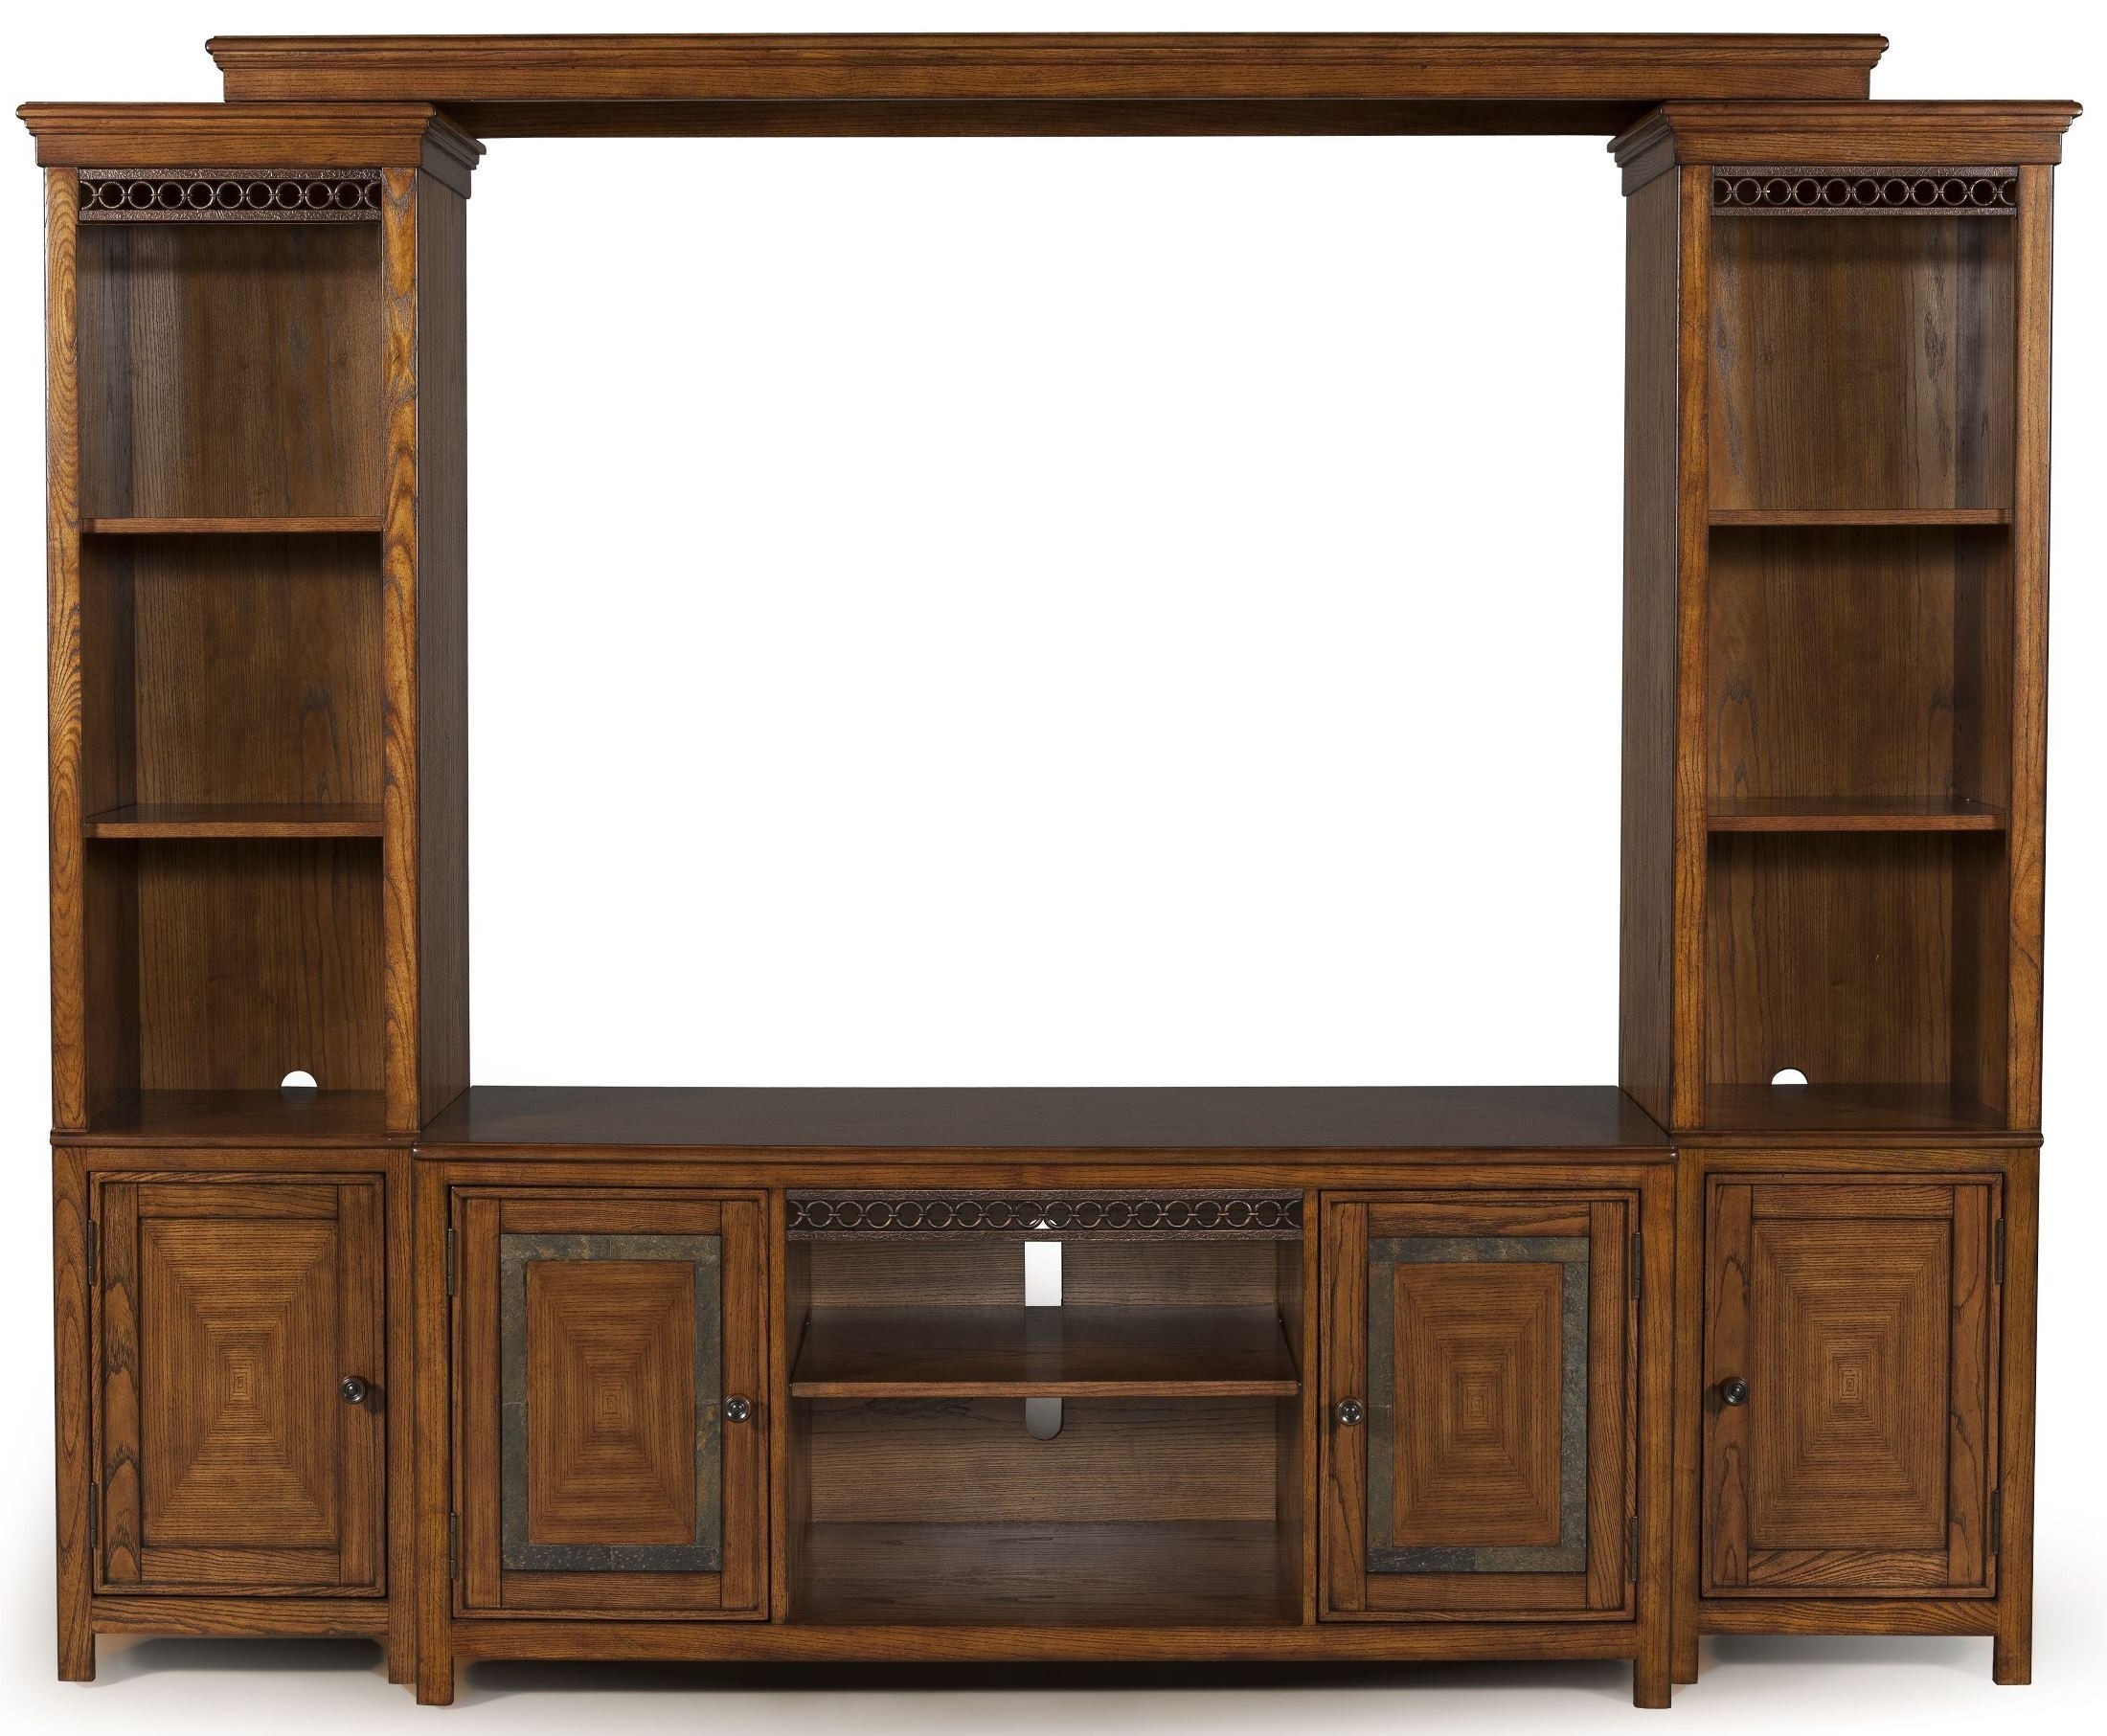 Madison Entertainment Wall, E1125 05 35(2) 55, Magnussen Pertaining To Rey Coastal Chic Universal Console 2 Drawer Tv Stands (View 3 of 20)